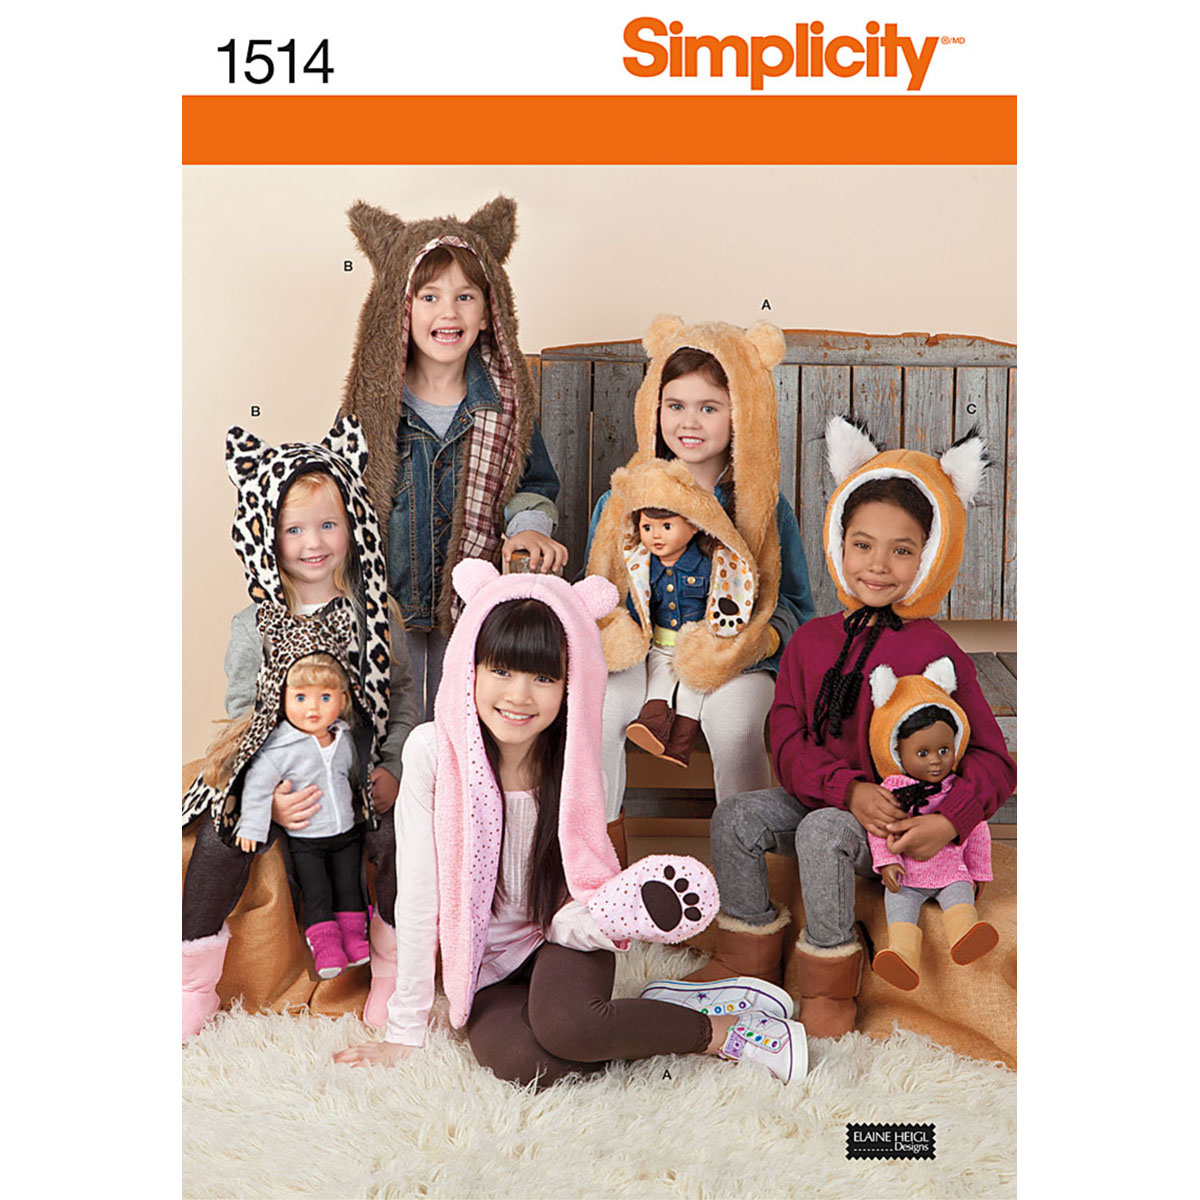 Simplicity Pattern 1514A S-M-L -Crafts Costumes